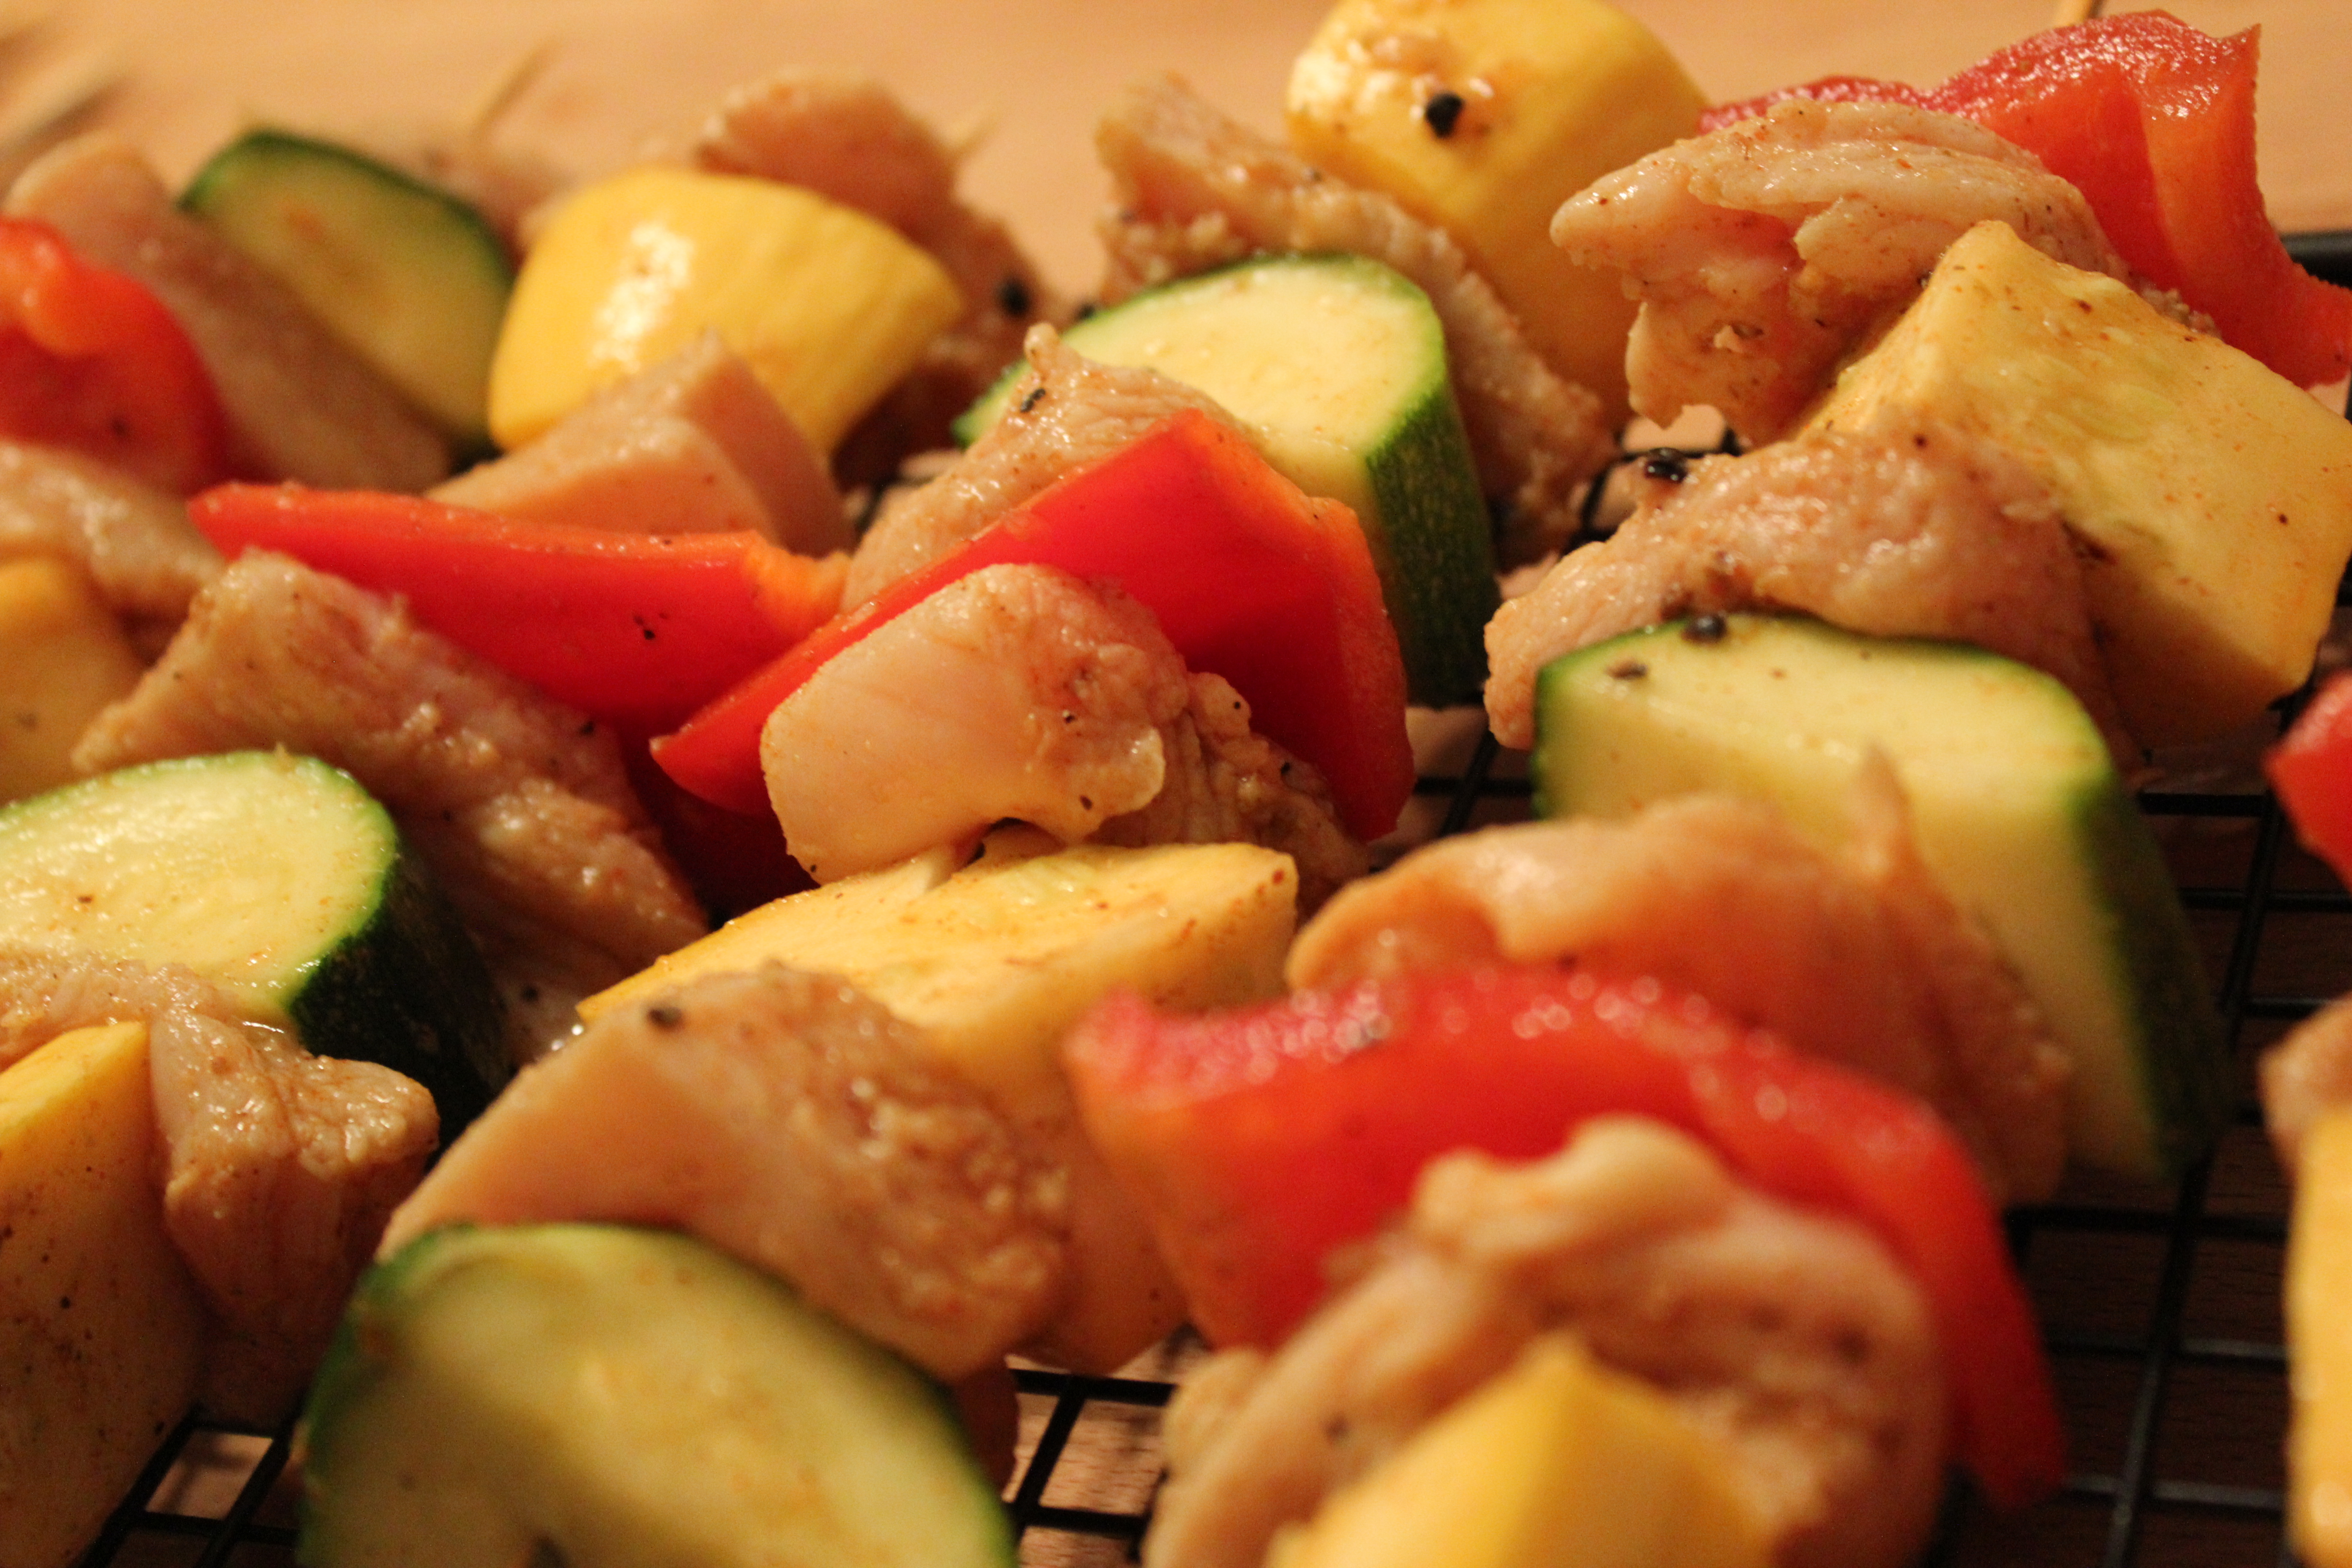 How long do i grill chicken kabobs - Lime Grilled Chicken Kabobs